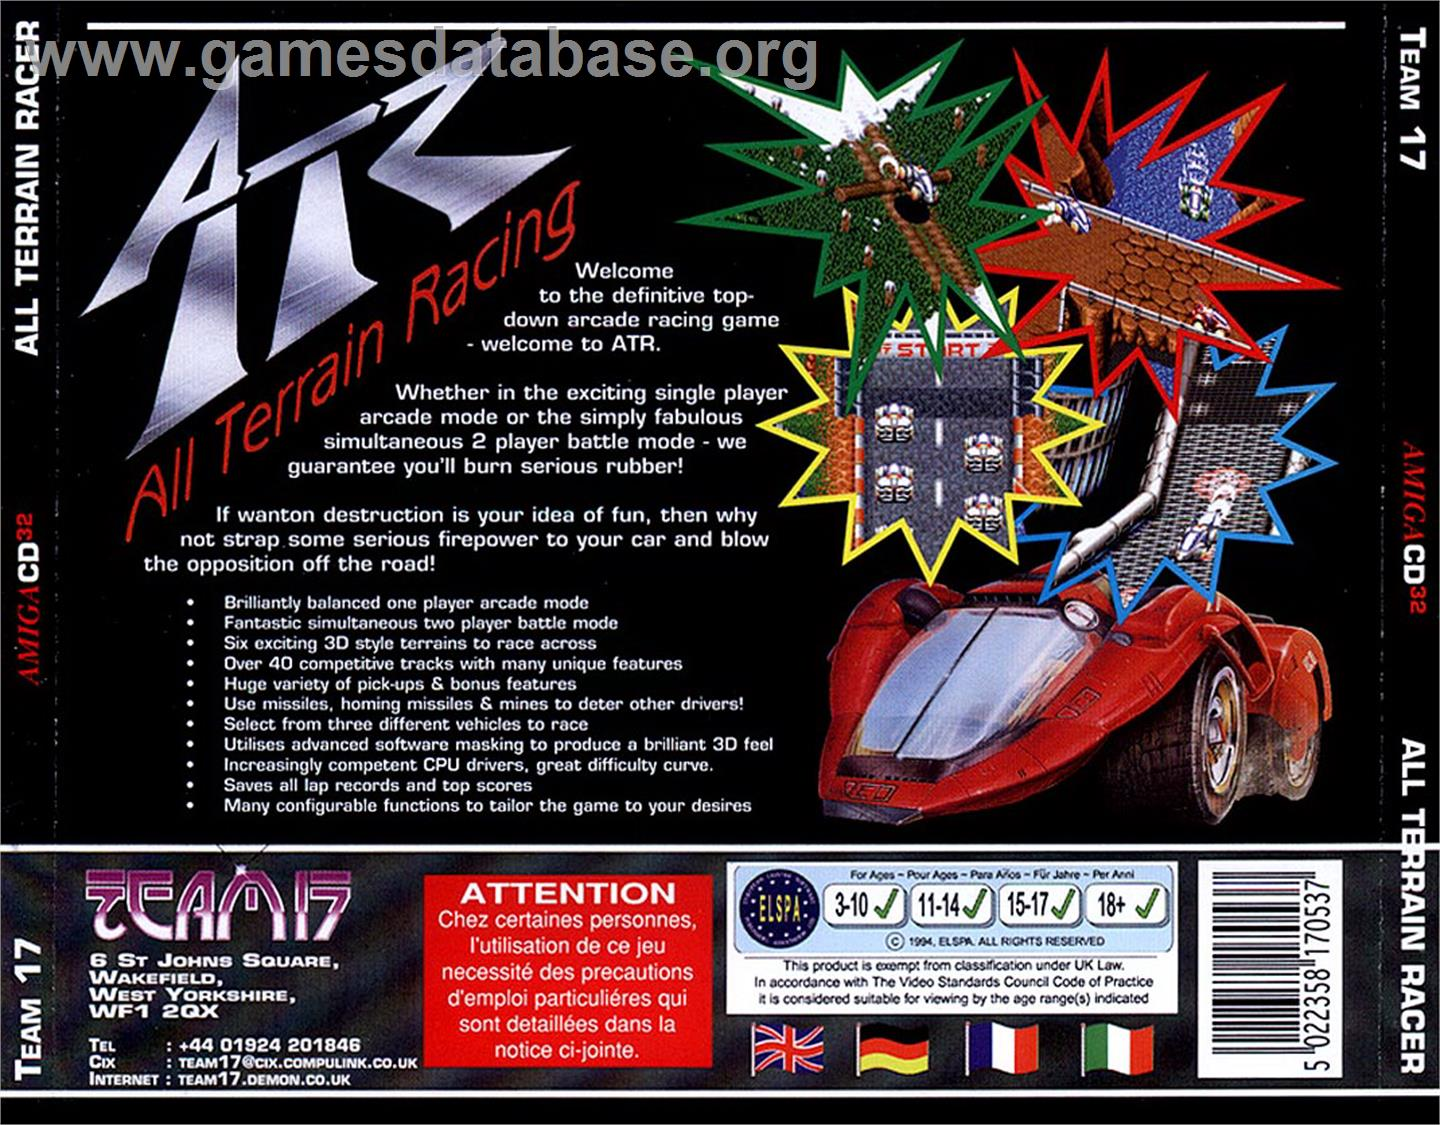 ATR: All Terrain Racing - Commodore Amiga CD32 - Artwork - Box Back